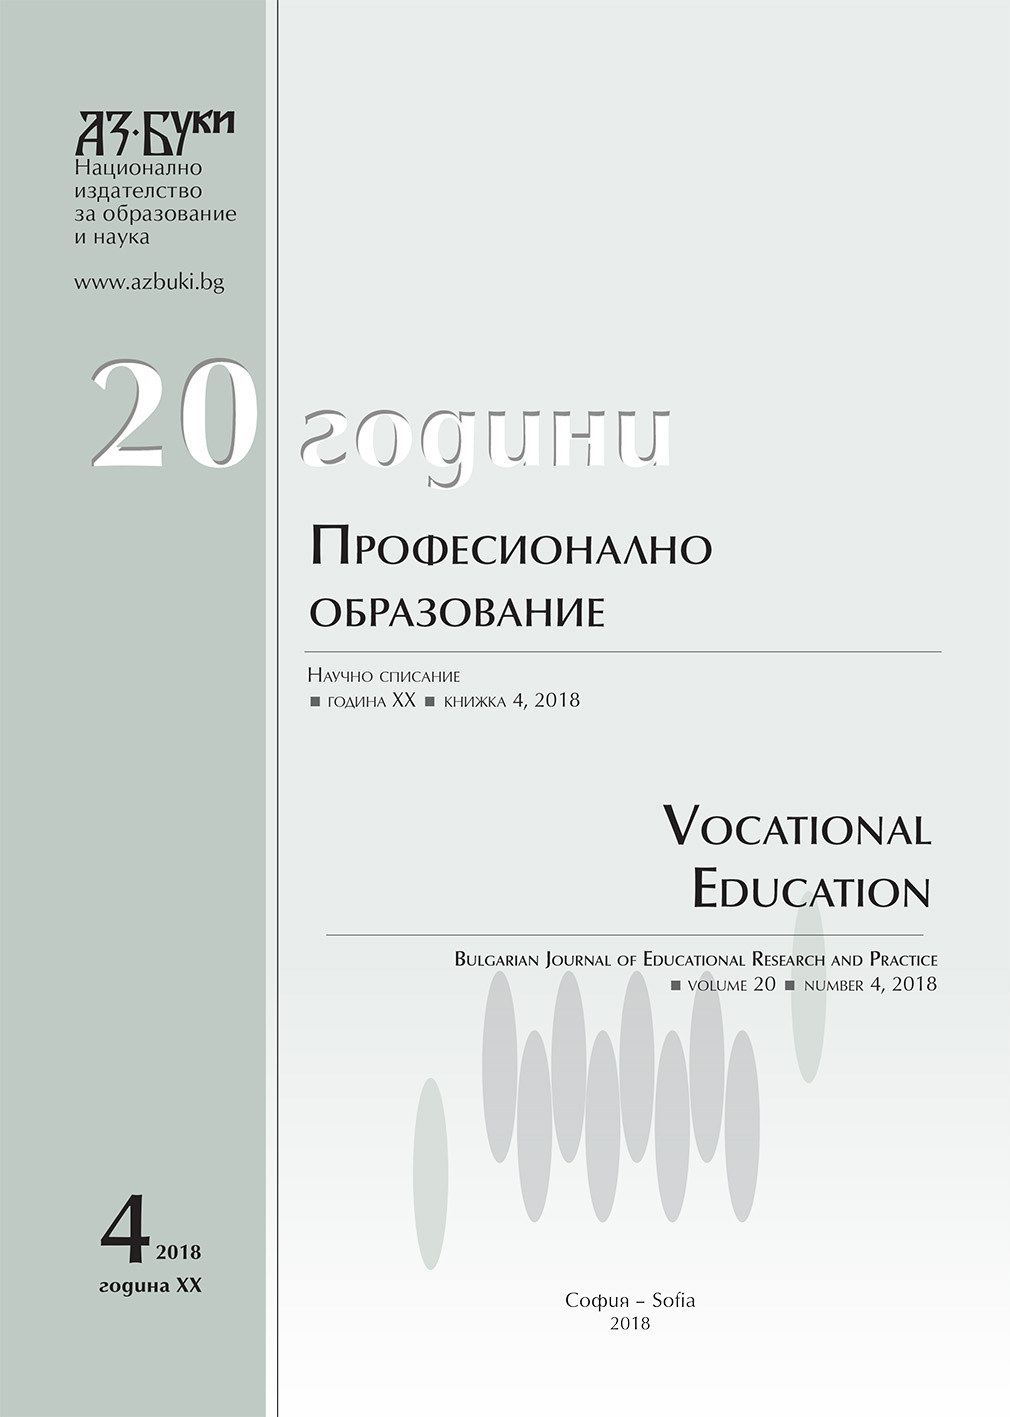 Impact Assessment of Active Labour Market Policy on an Individual Level in Bulgaria: a Review of the Assessments Made and Lessons Learned Cover Image